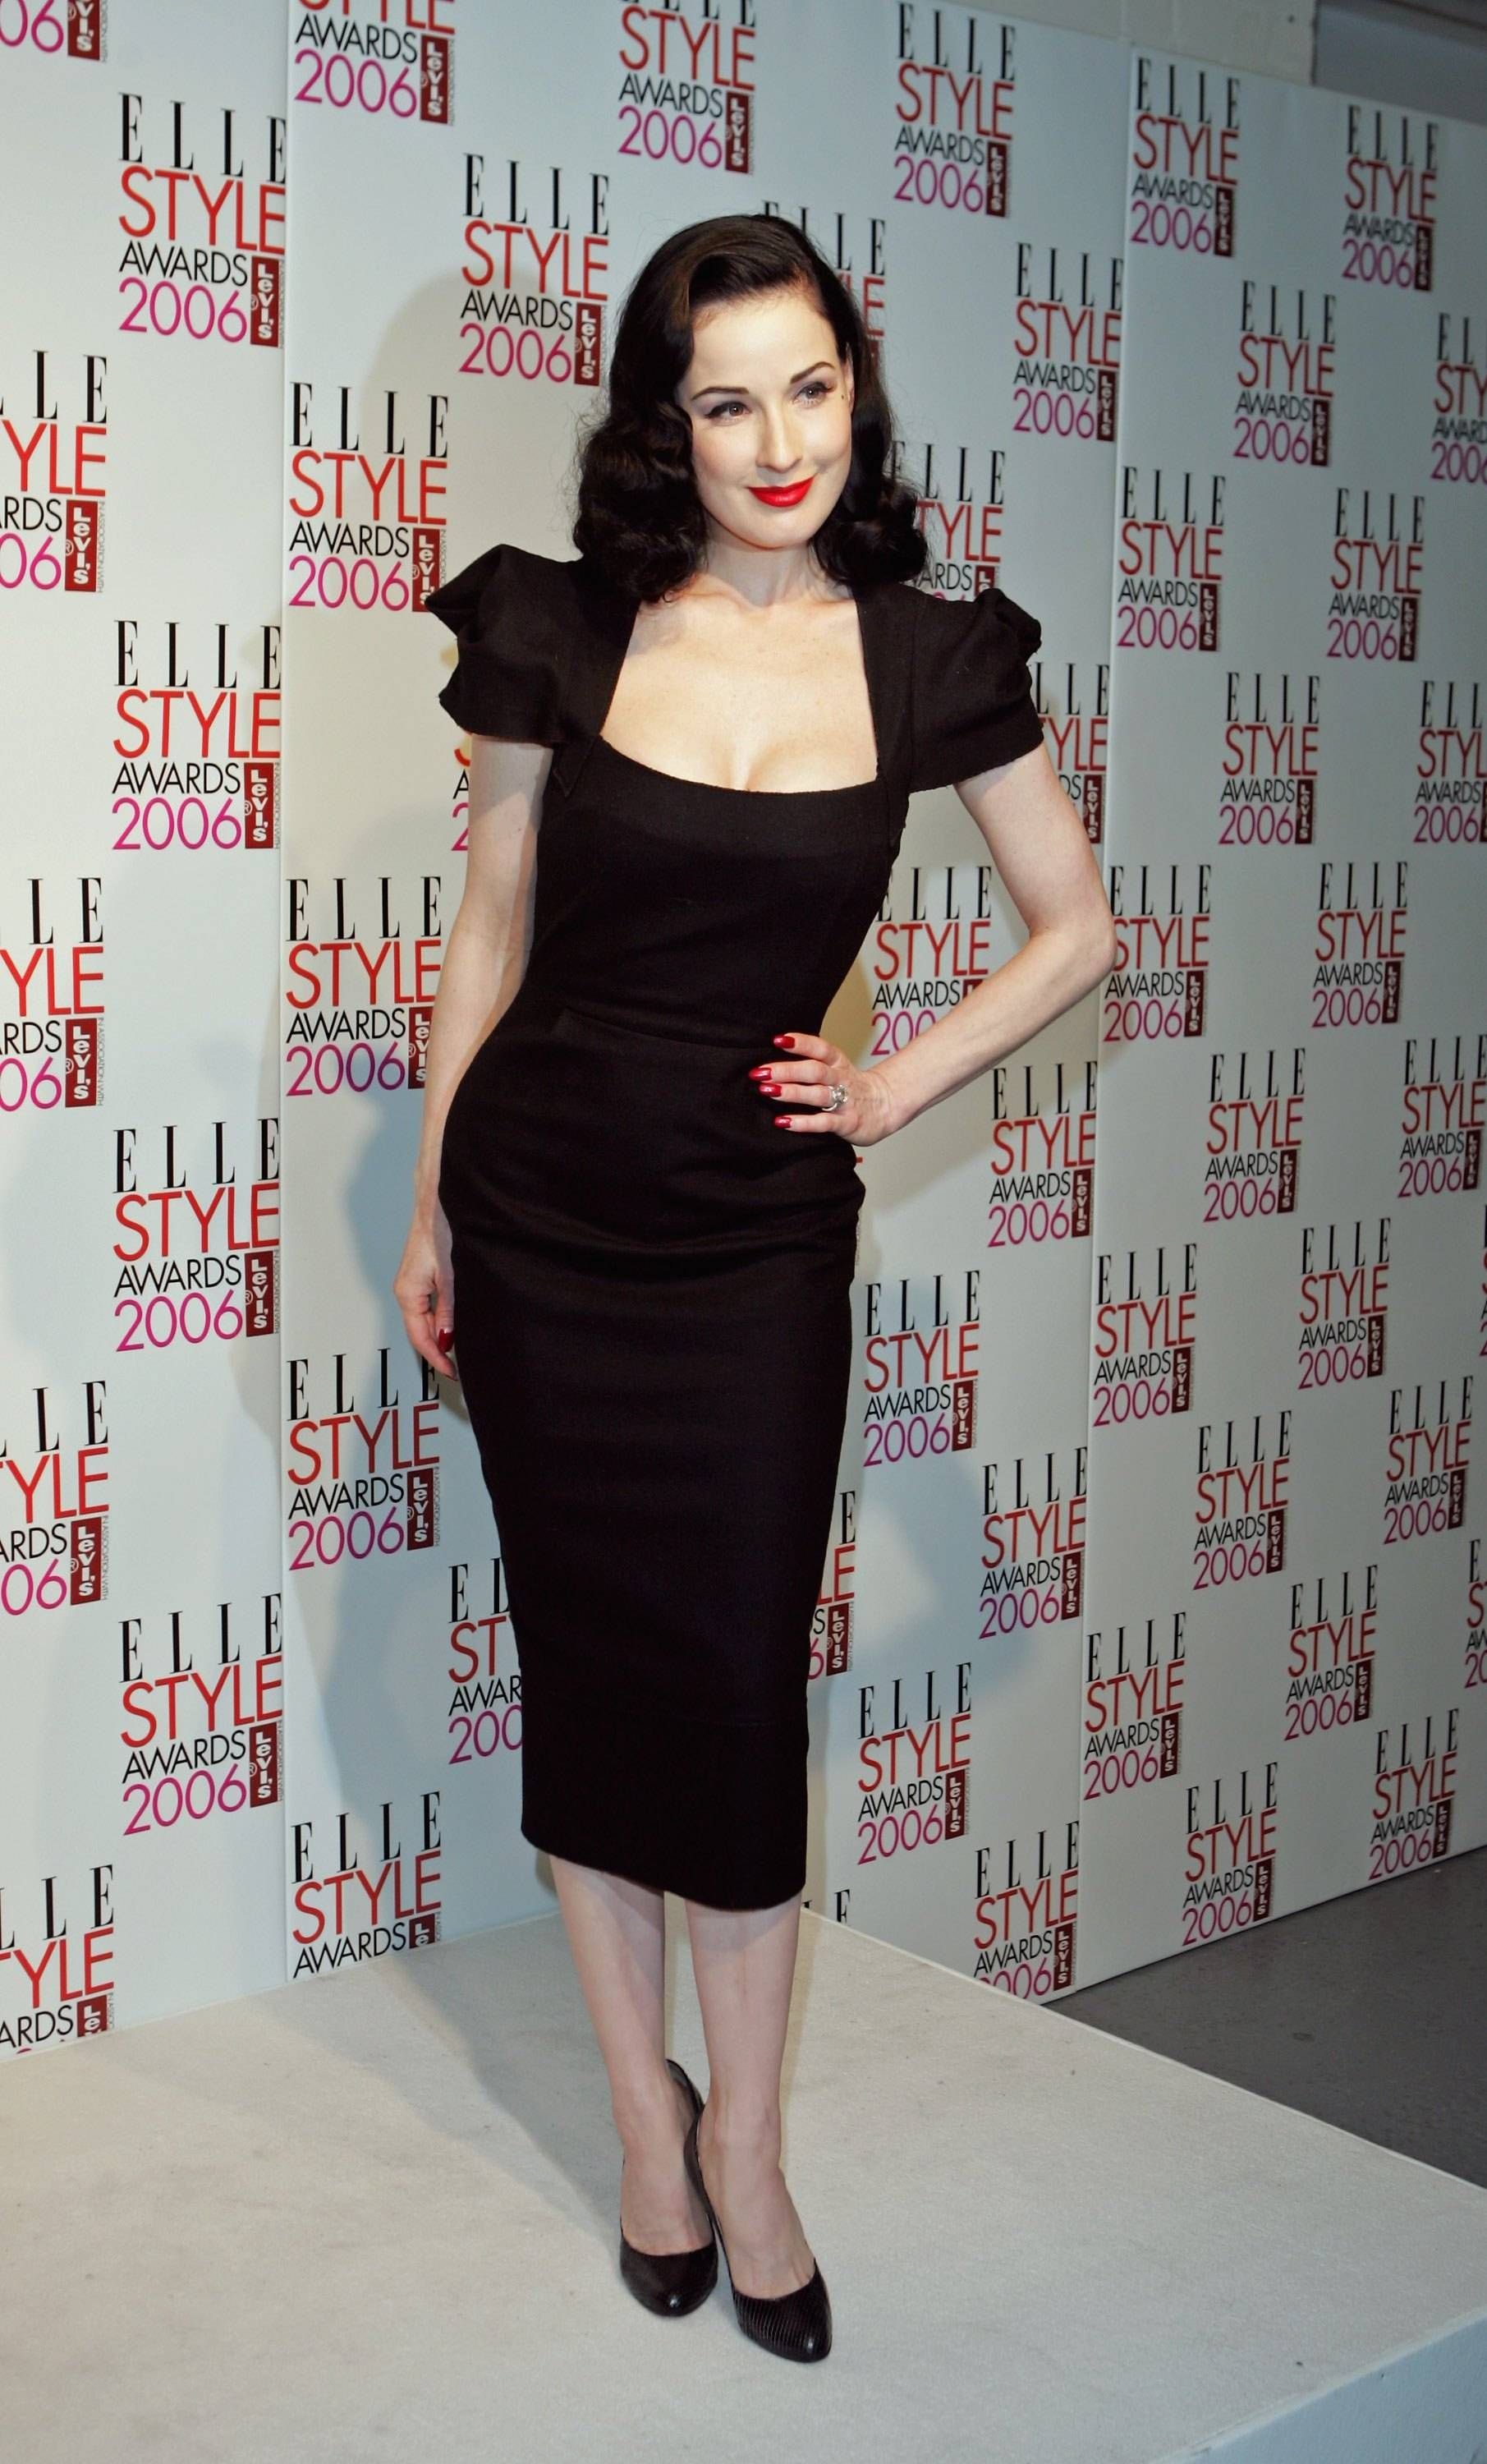 To acquire Teese von dita style icon picture trends